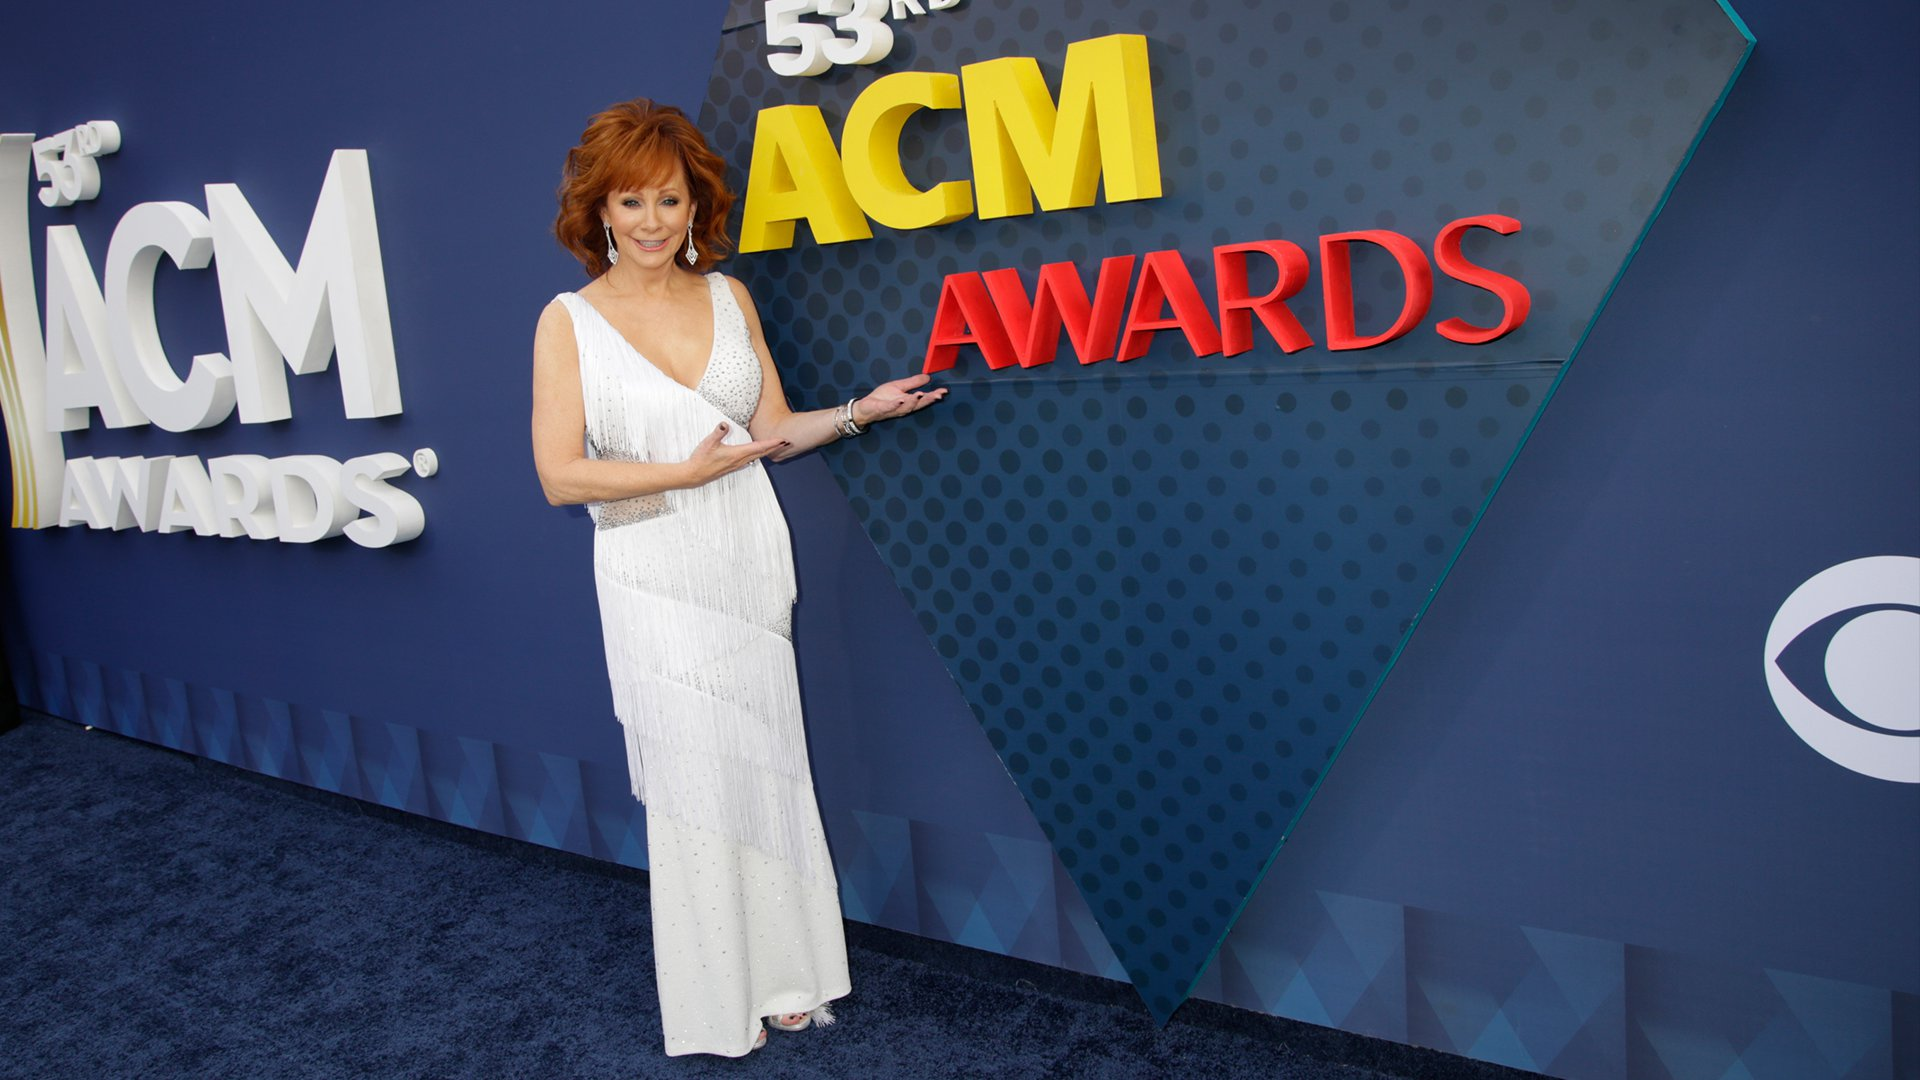 Reba McEntire manages to pose on the ACM red carpet before starting her hosting duties.